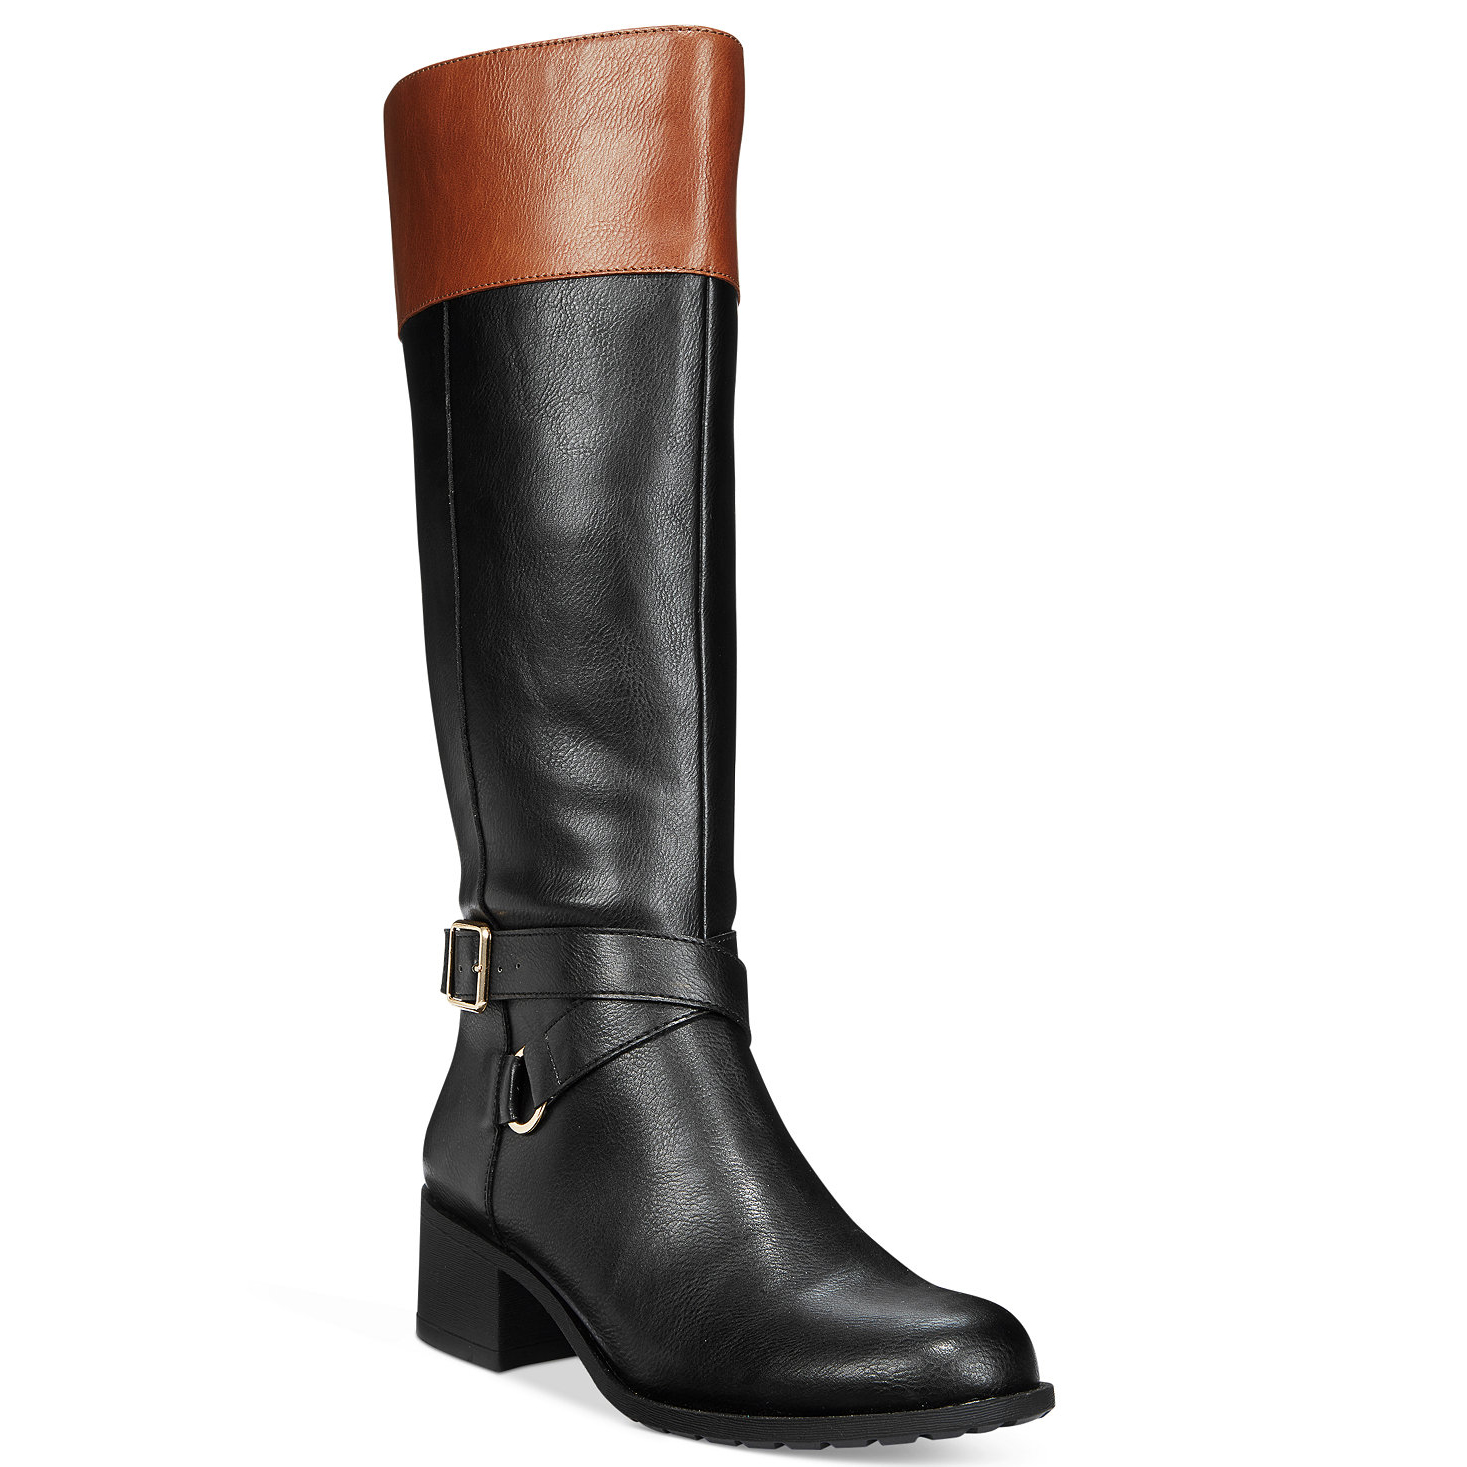 b9e0cc78a7cb A contrast of black and brown offers a stylish upgrade on classic  equestrian boots — and this pair s wider shaft means your feet won t go  numb the moment ...